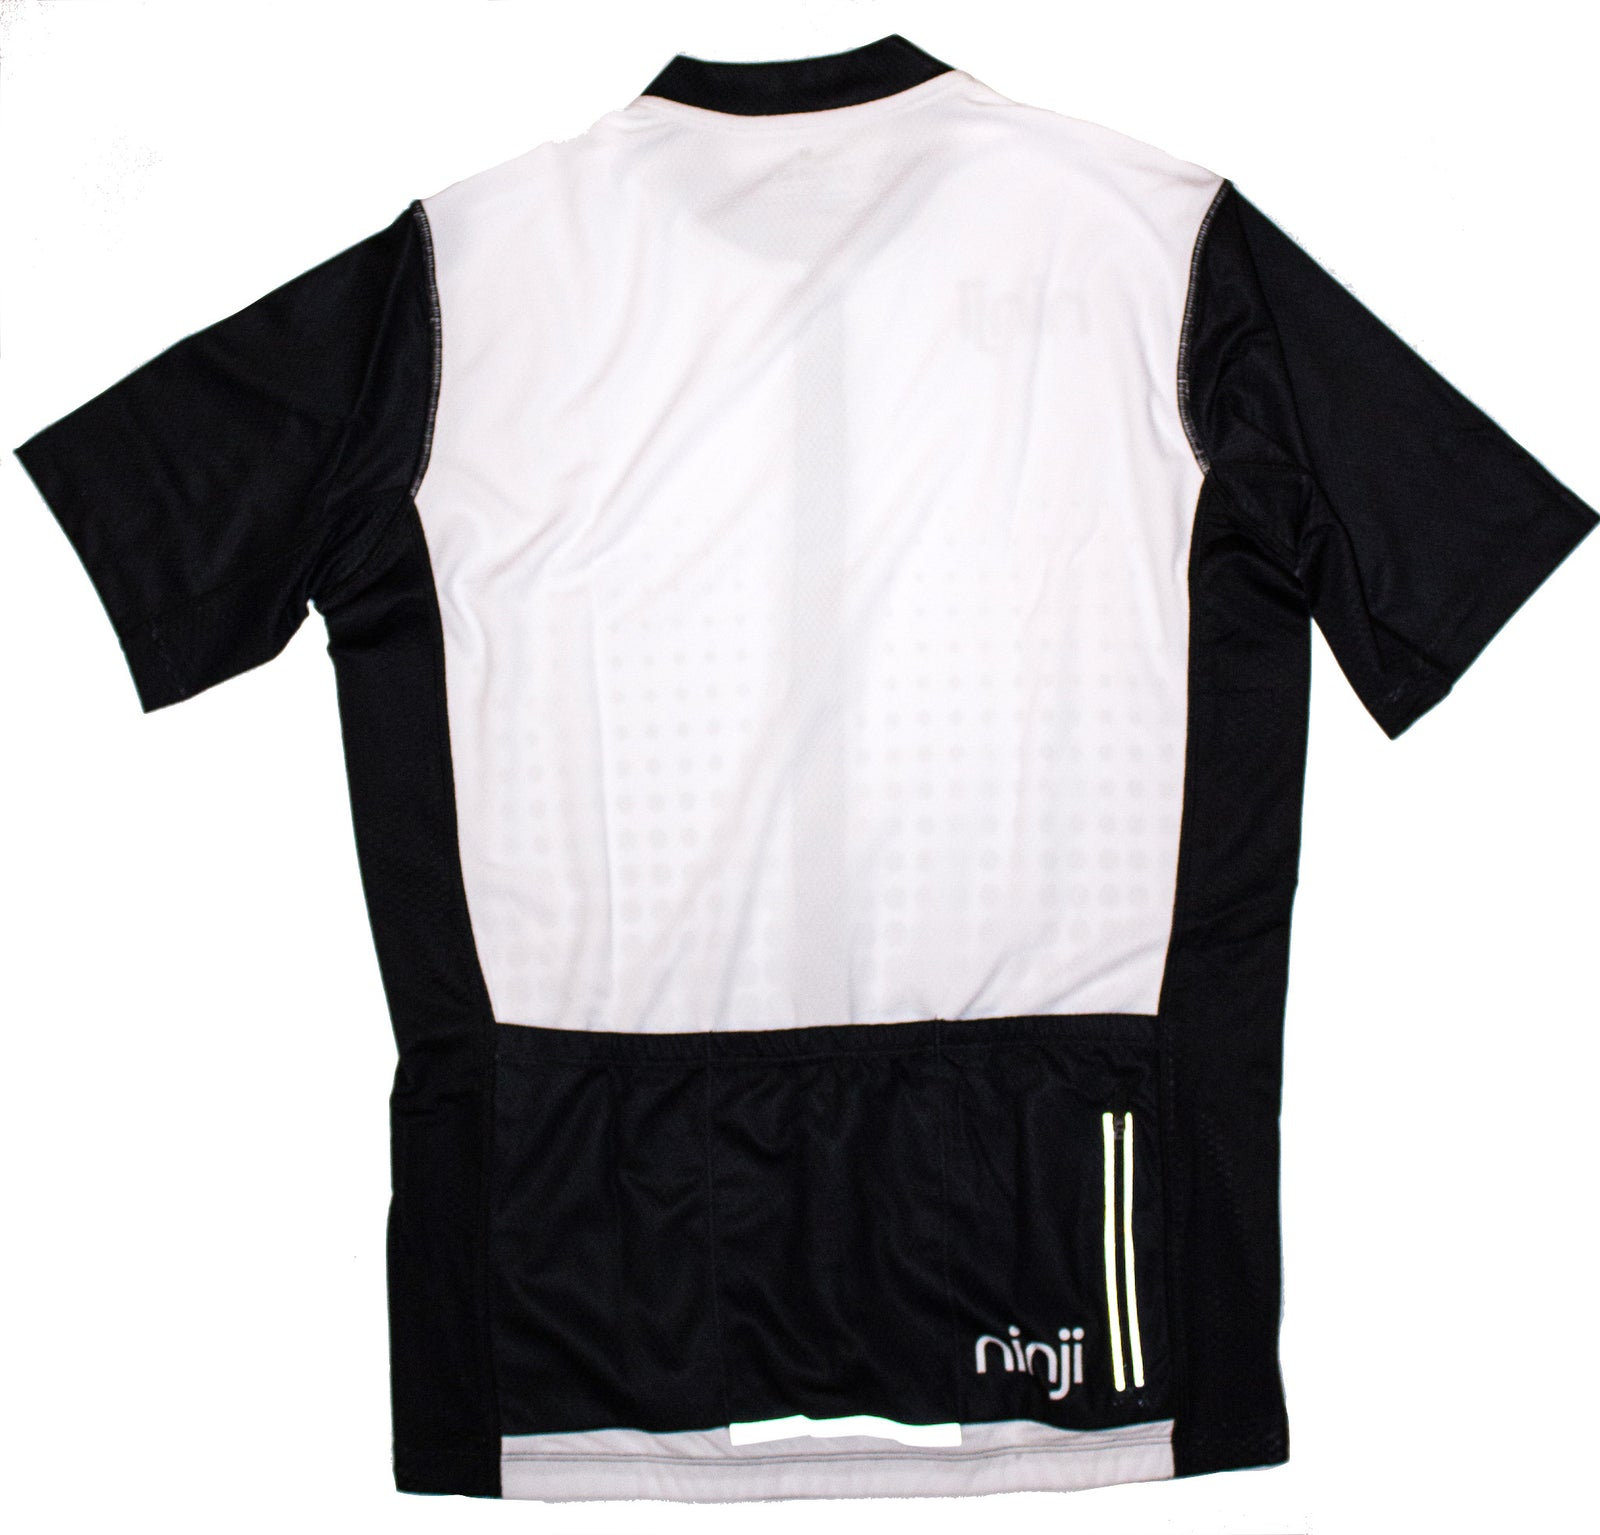 MENS SS JERSEY - WHITE BLACK FADE